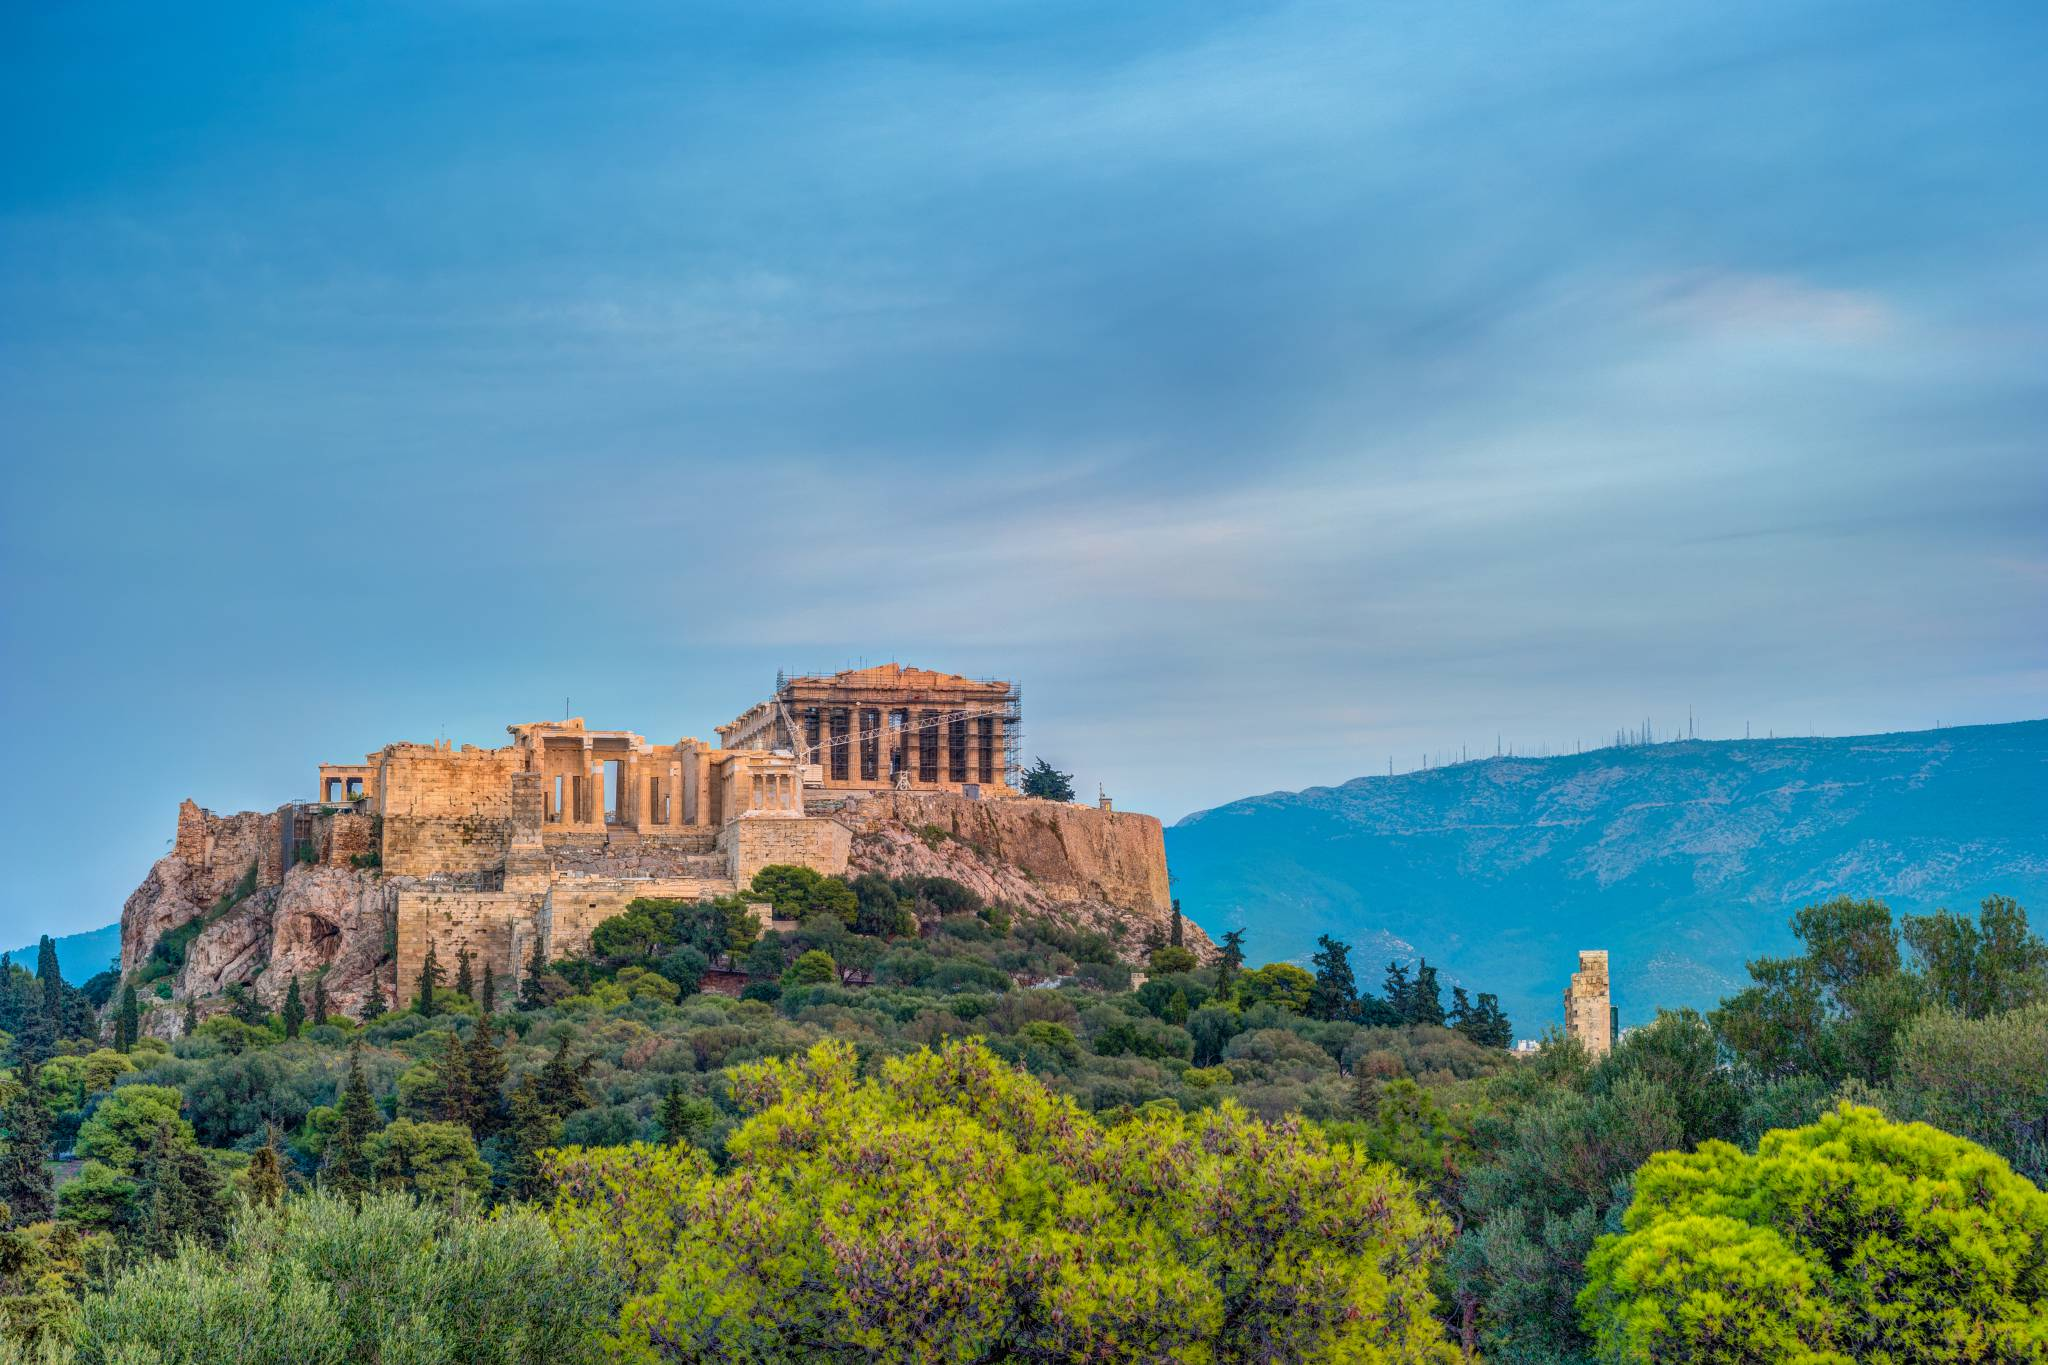 Travel Through Athens with our Travel Guide